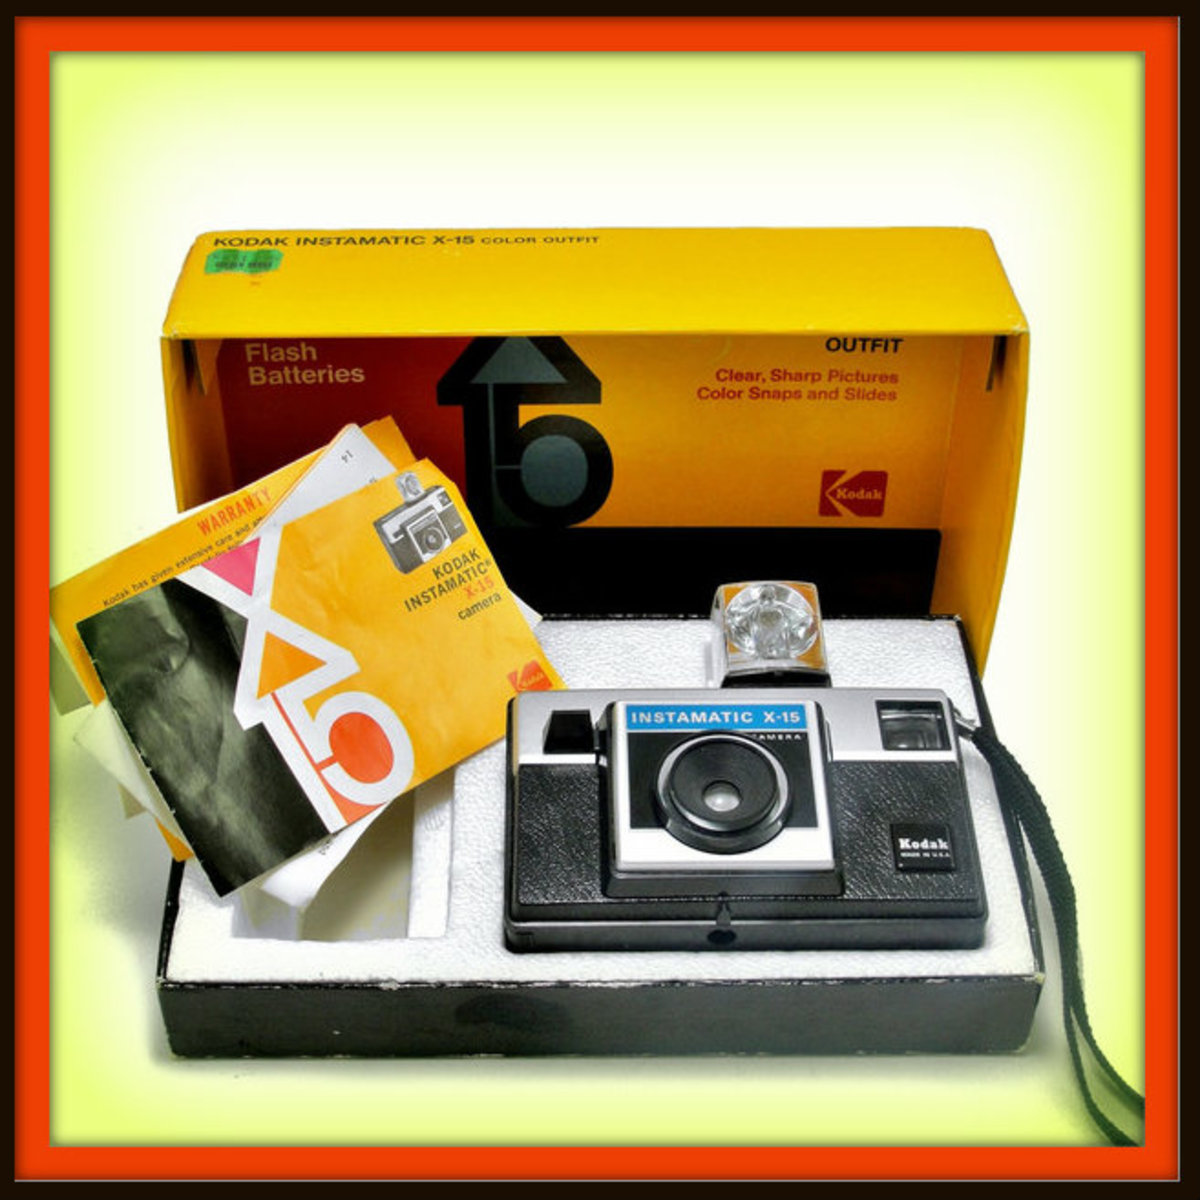 The Kodak Instamatic X-15 Camera requires no batteries, no focusing or other setting. It offers instant, effortless picture taking by sunlight or with the new four bulb, sell-powered Magicube, Type X.